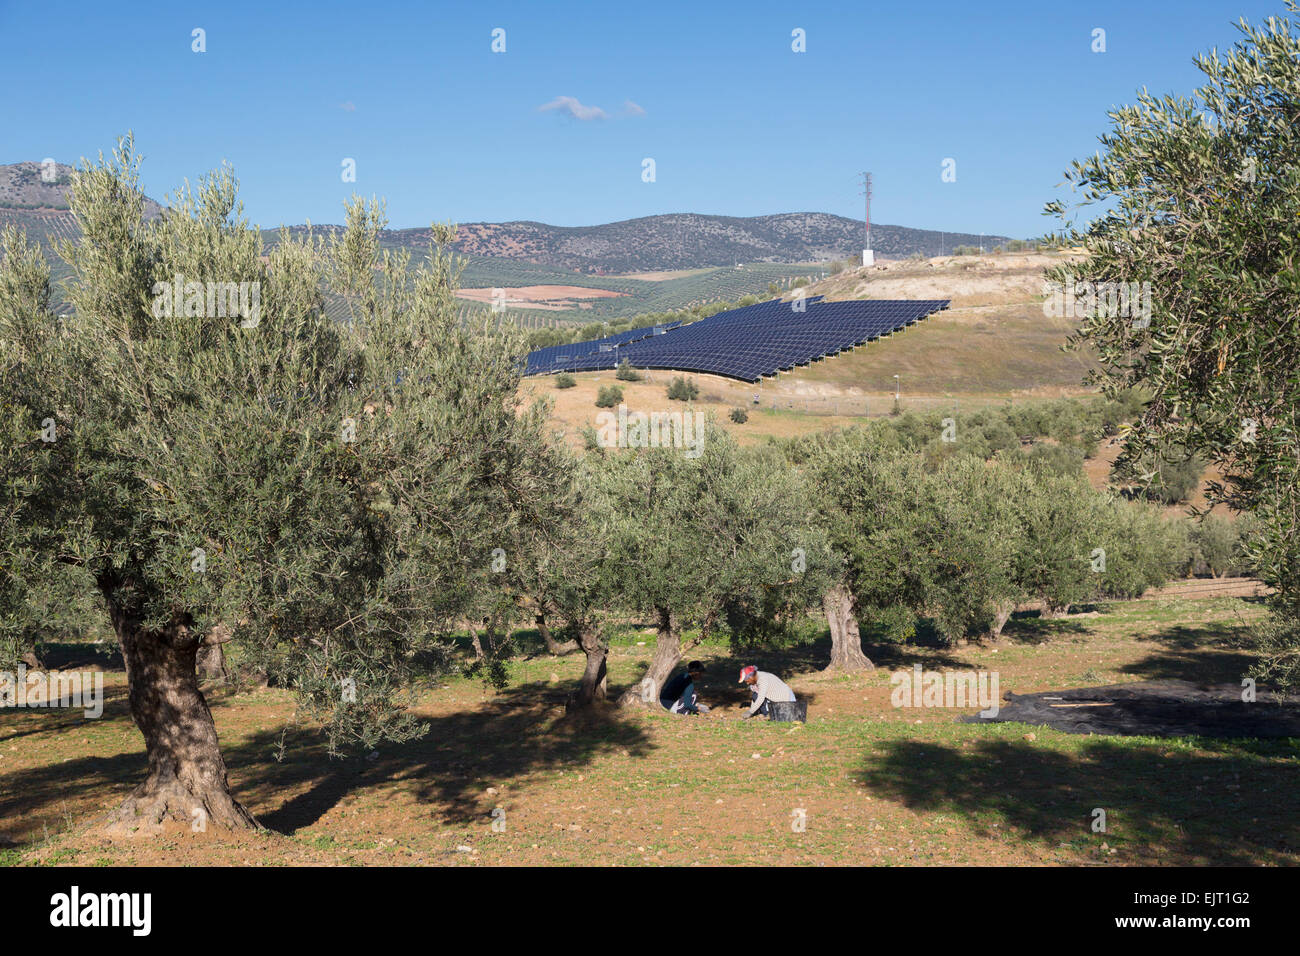 Two women collecting fallen olives from ground.  Solar panel array in background.  Olive trees and solar panels, - Stock Image